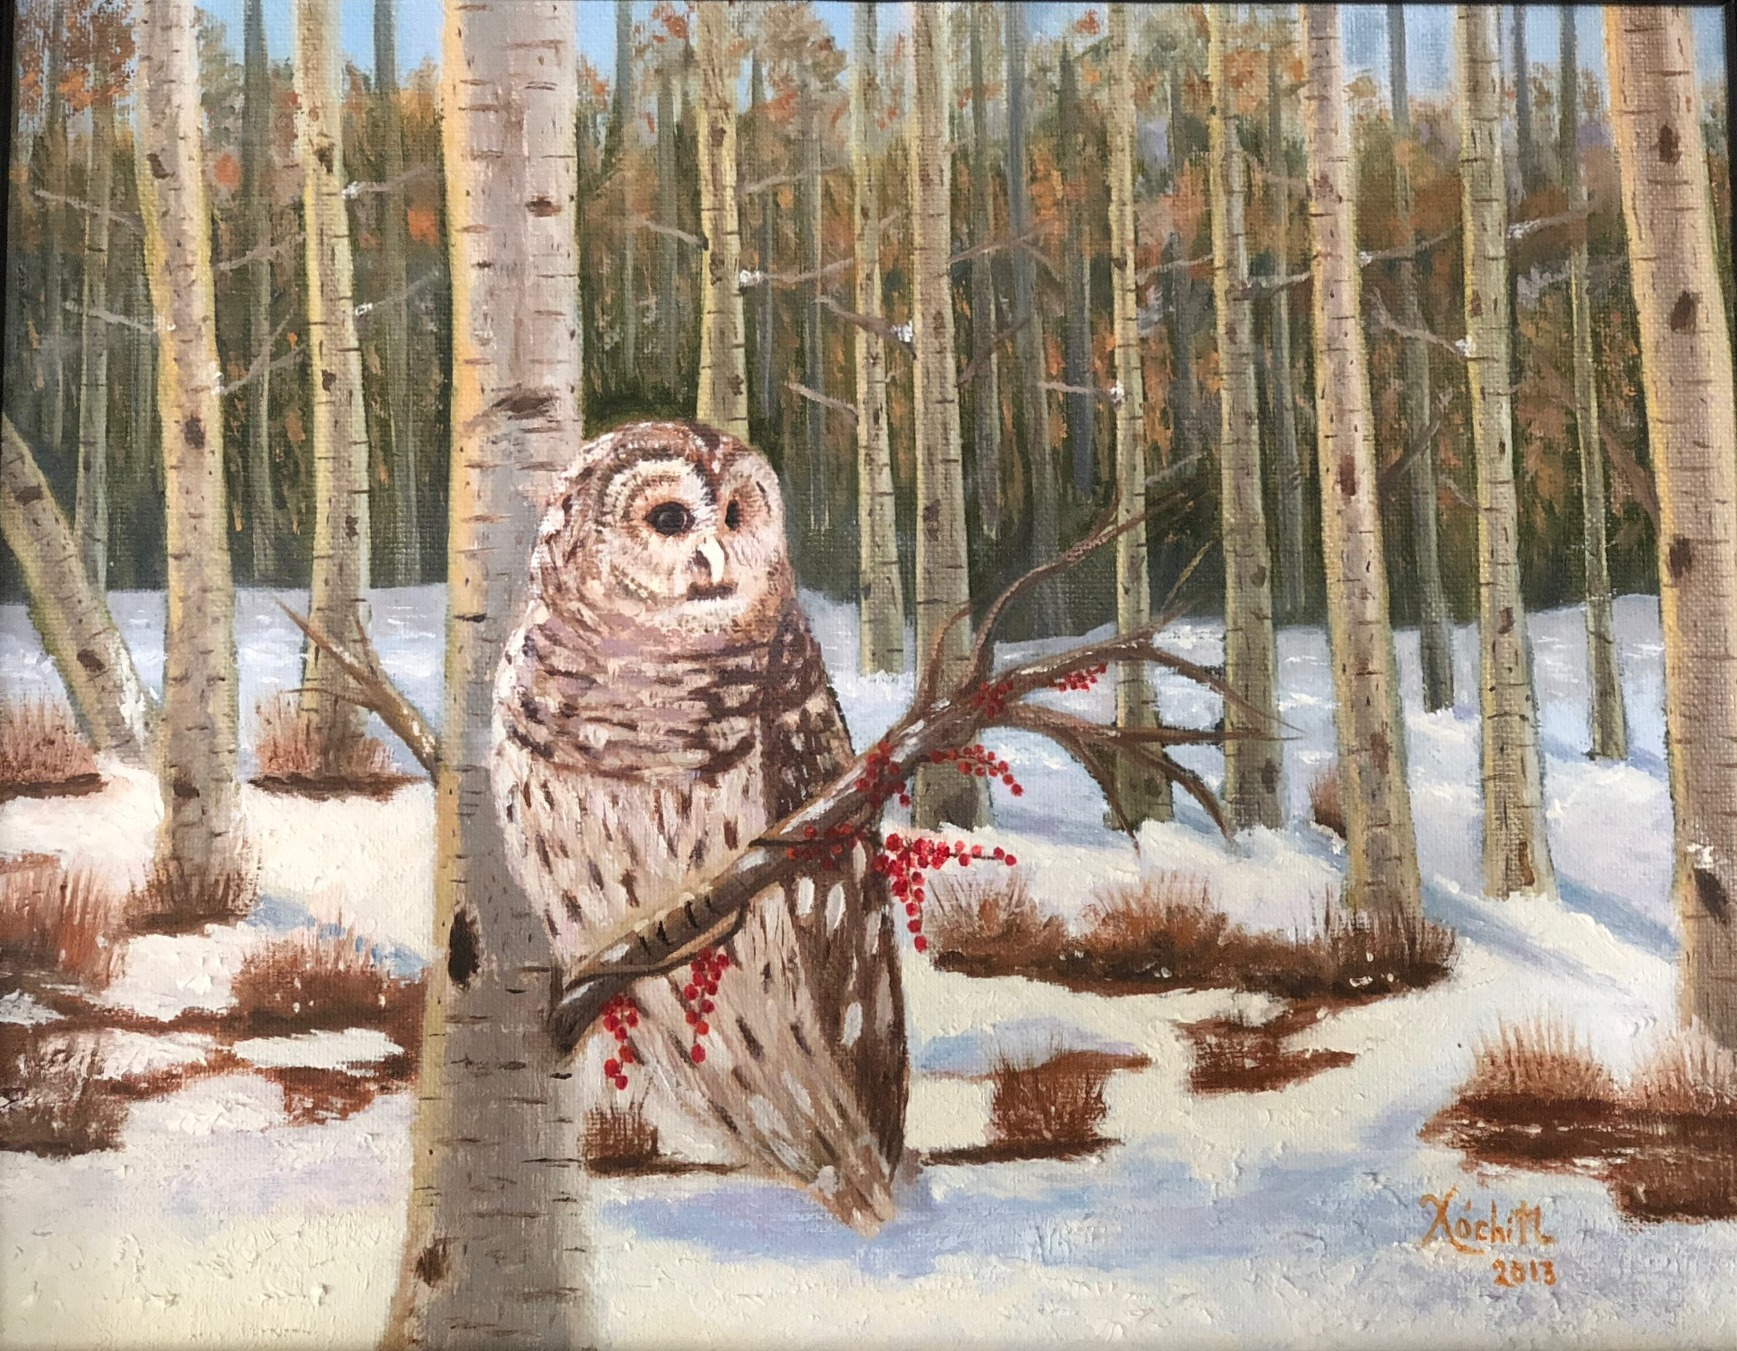 Owl on a Snowy Day